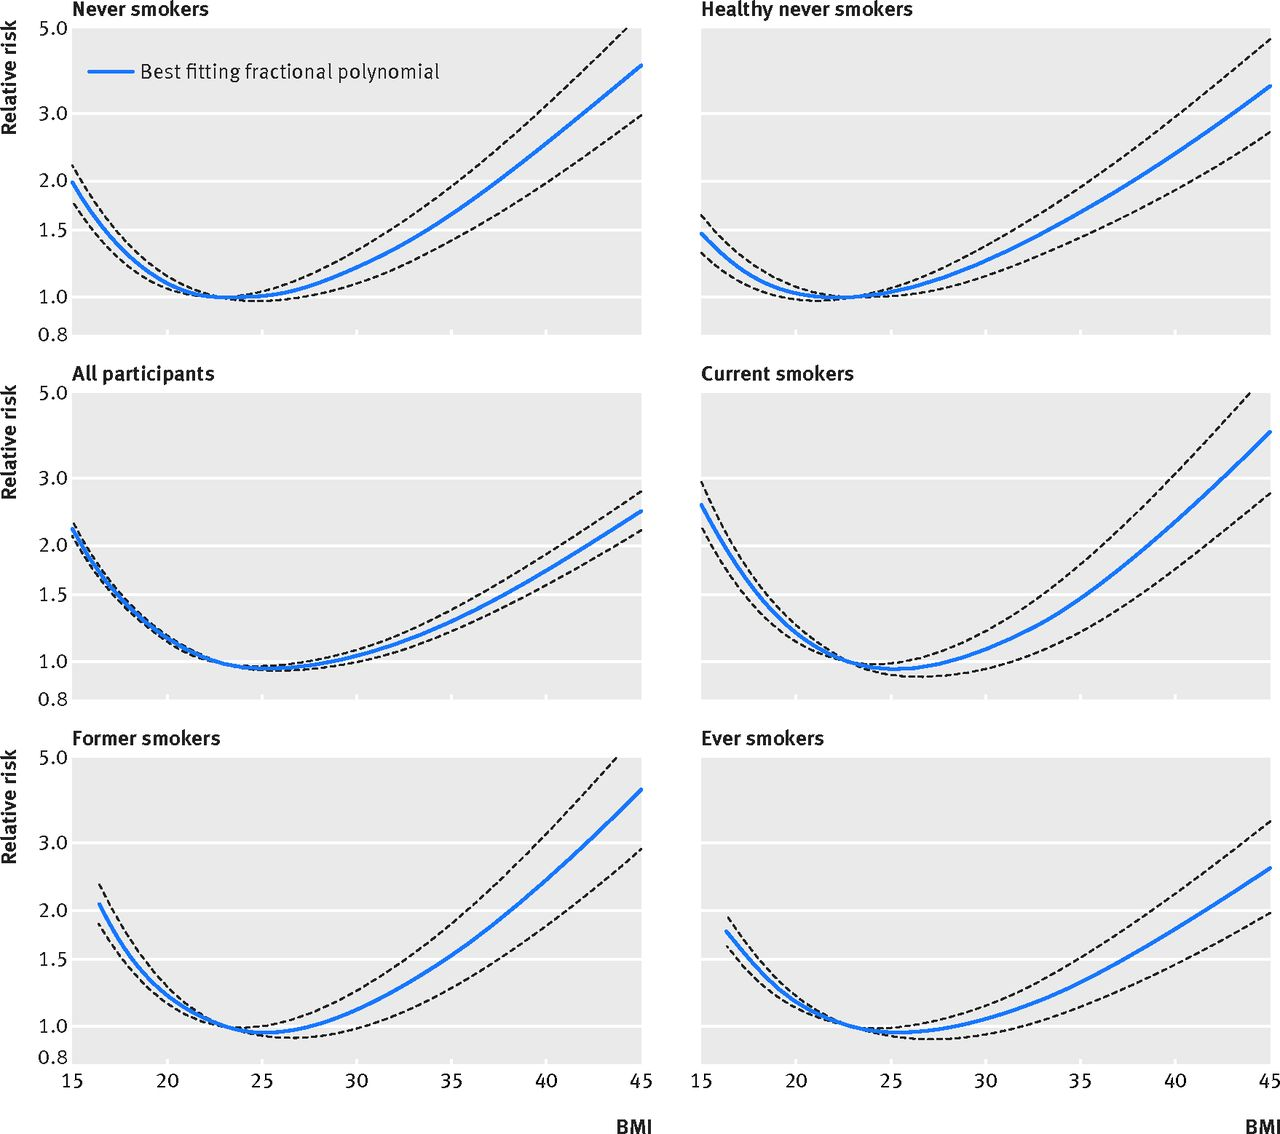 Bmi and all cause mortality systematic review and non linear dose fig 2 non linear dose response analysis of bmi and all cause mortality among never smokers healthy never smokers all participants current former nvjuhfo Image collections